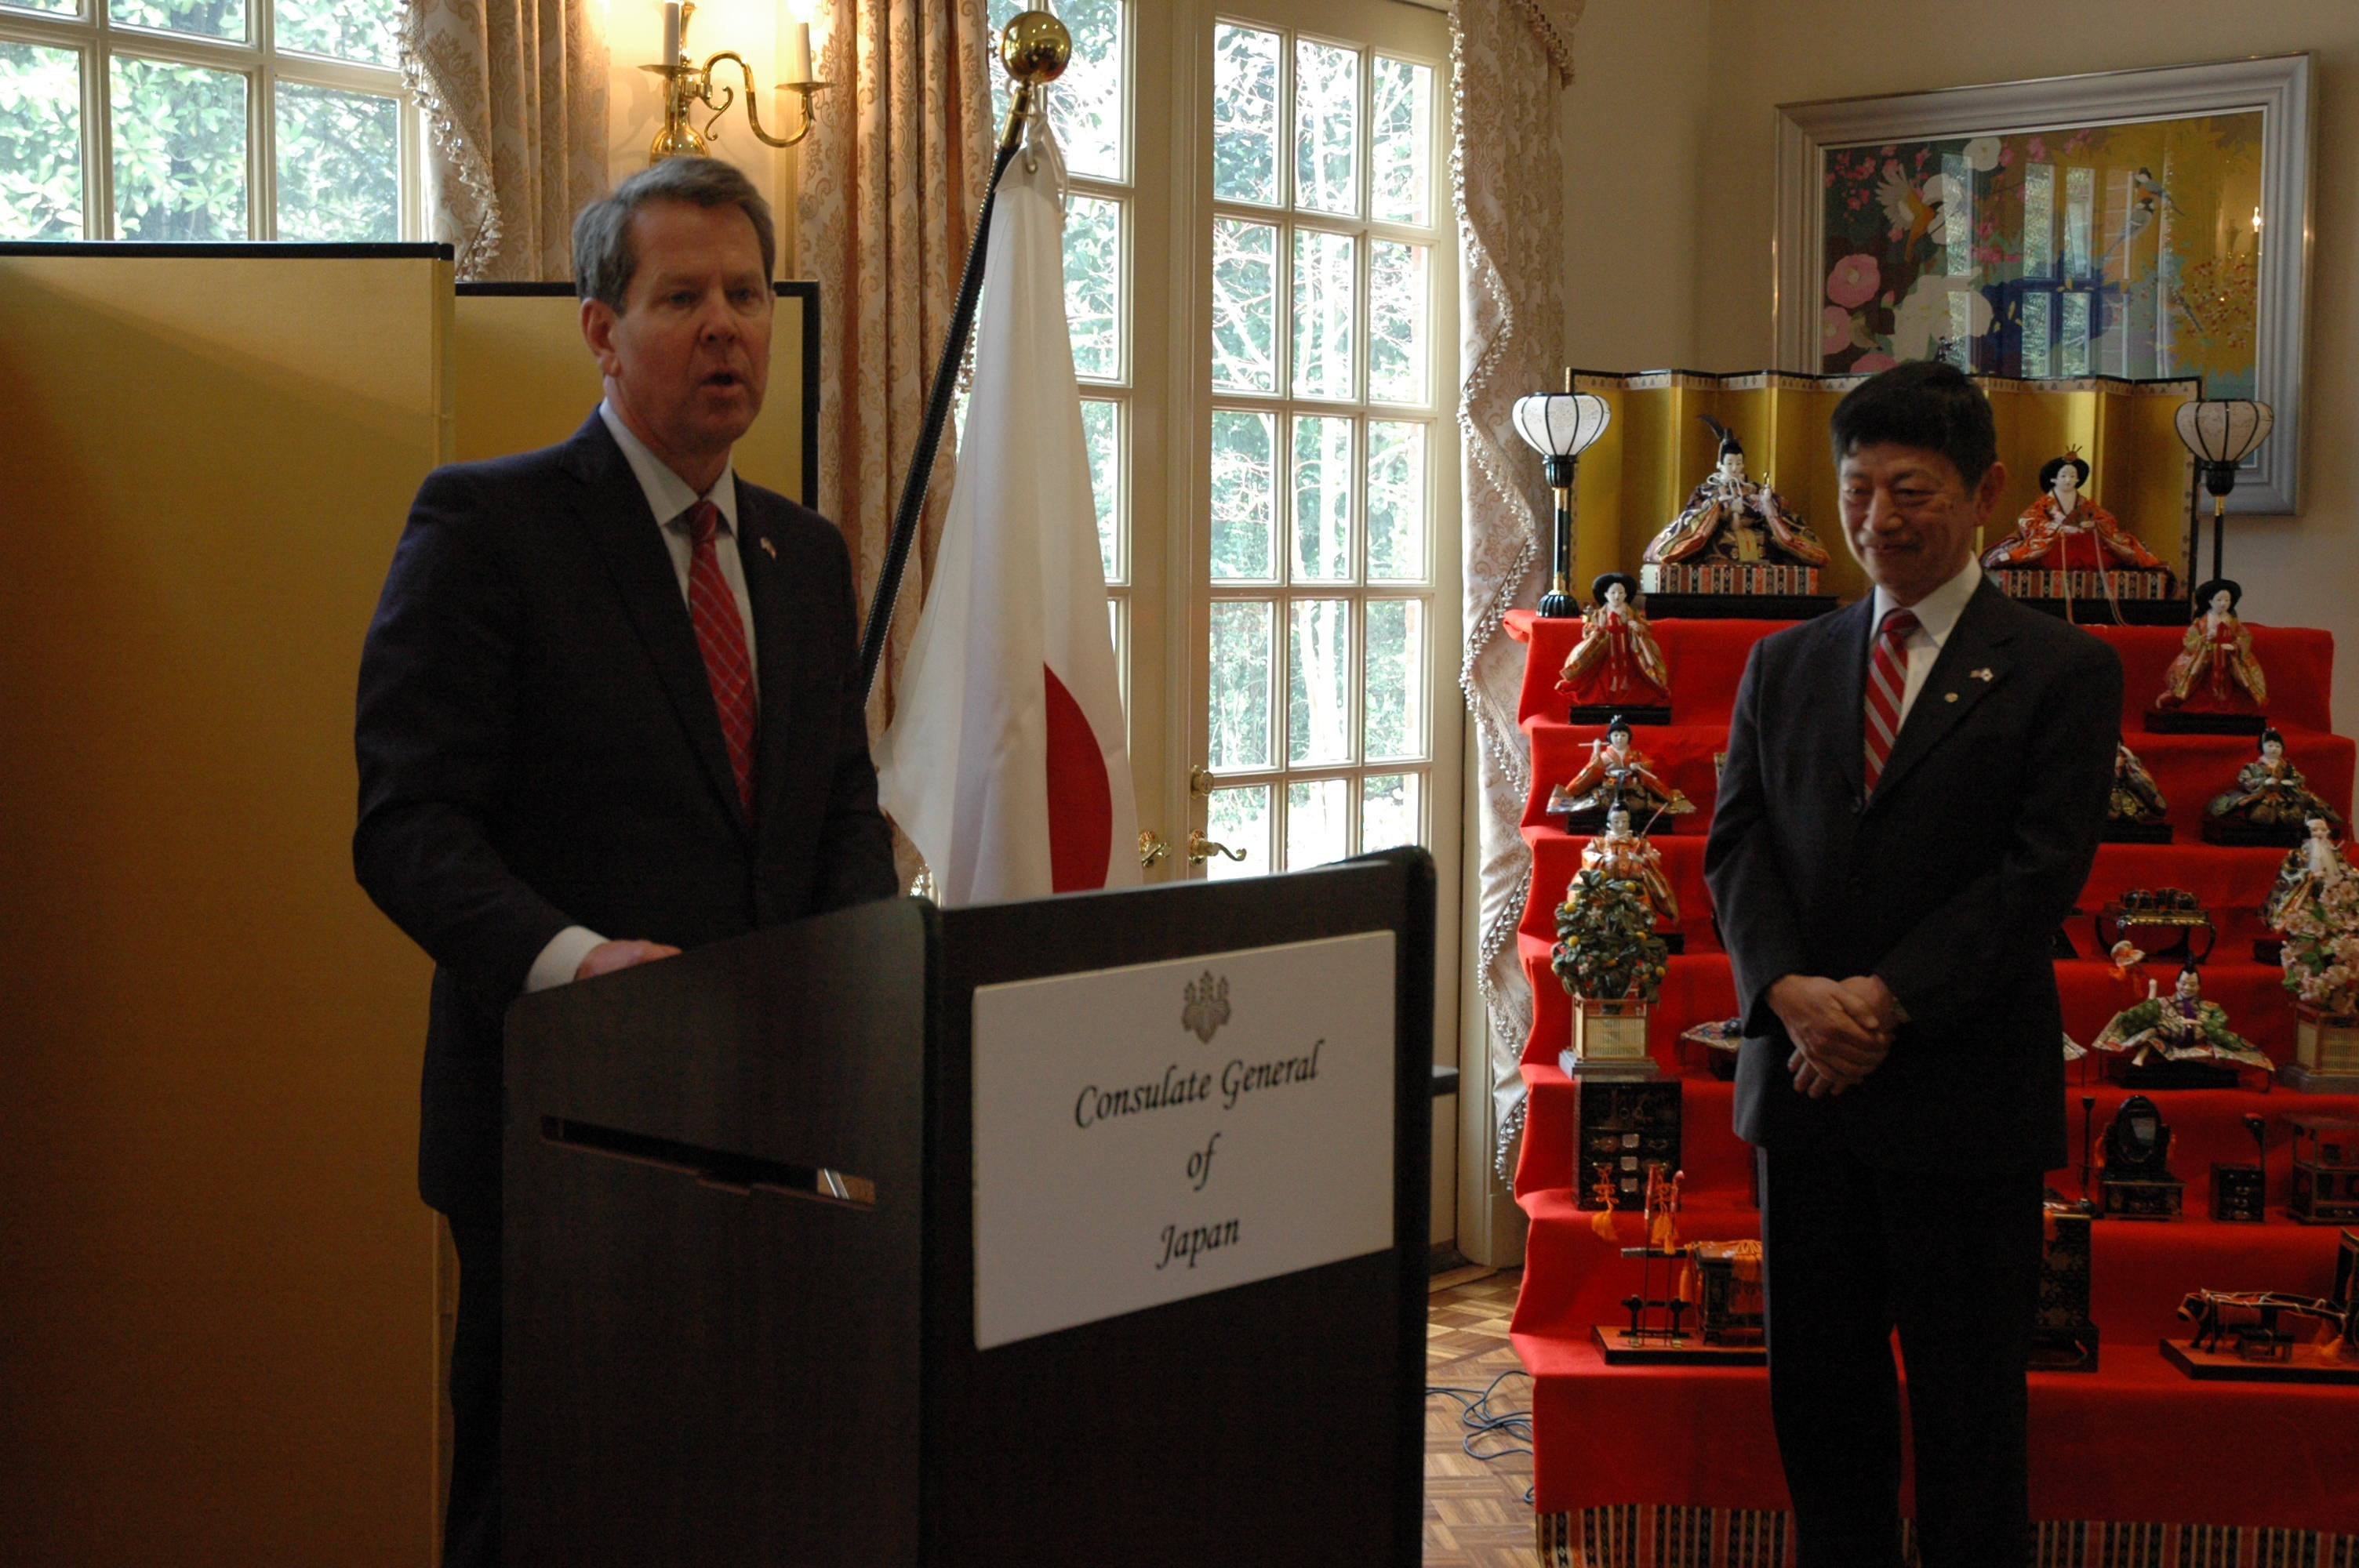 45th Anniversary of the Consulate General of Japan in Atlanta